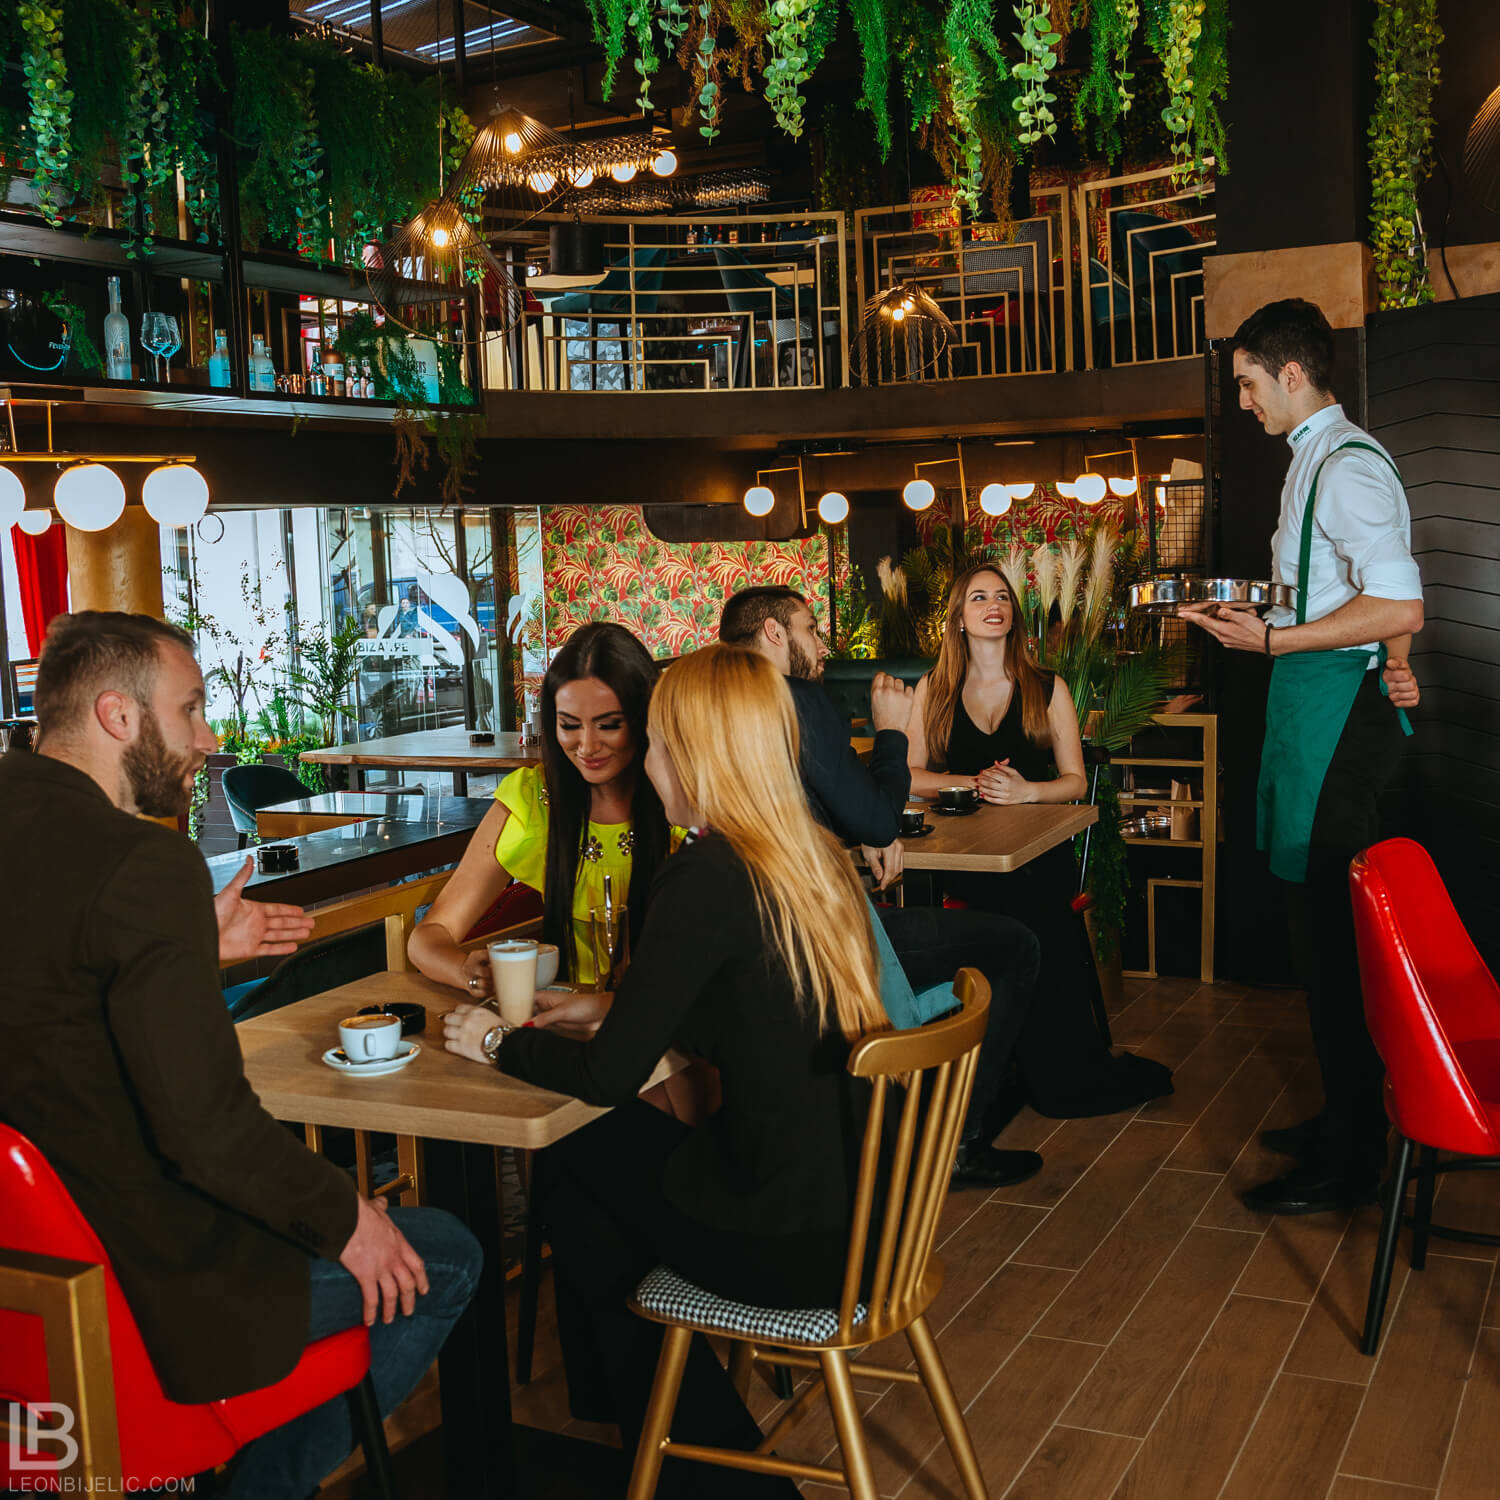 RESTAURANT BIZARRE DIVERSE BAR - WITH MODELS - BANJA LUKA - LEON BIJELIC PHOTOGRAPHY